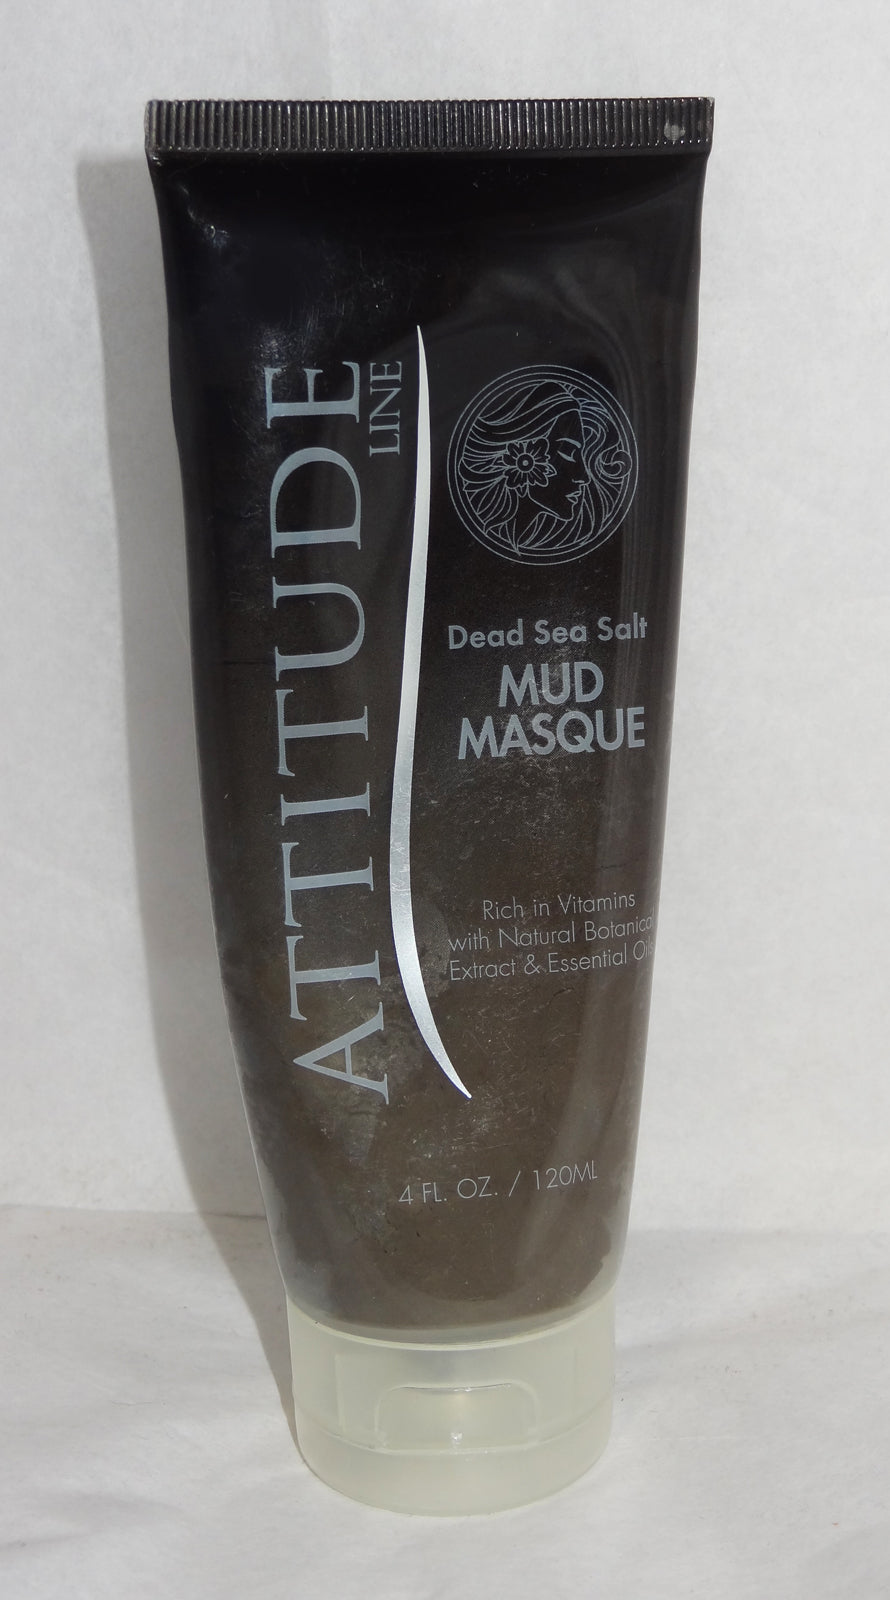 ATTITUDE LINE, DEAD SEA SALT MUD MASQUE, VITAMINS, NATURAL EXTRACTS & ESSENTIAL OILS, NEW - Junkdrawercoolfinds.com